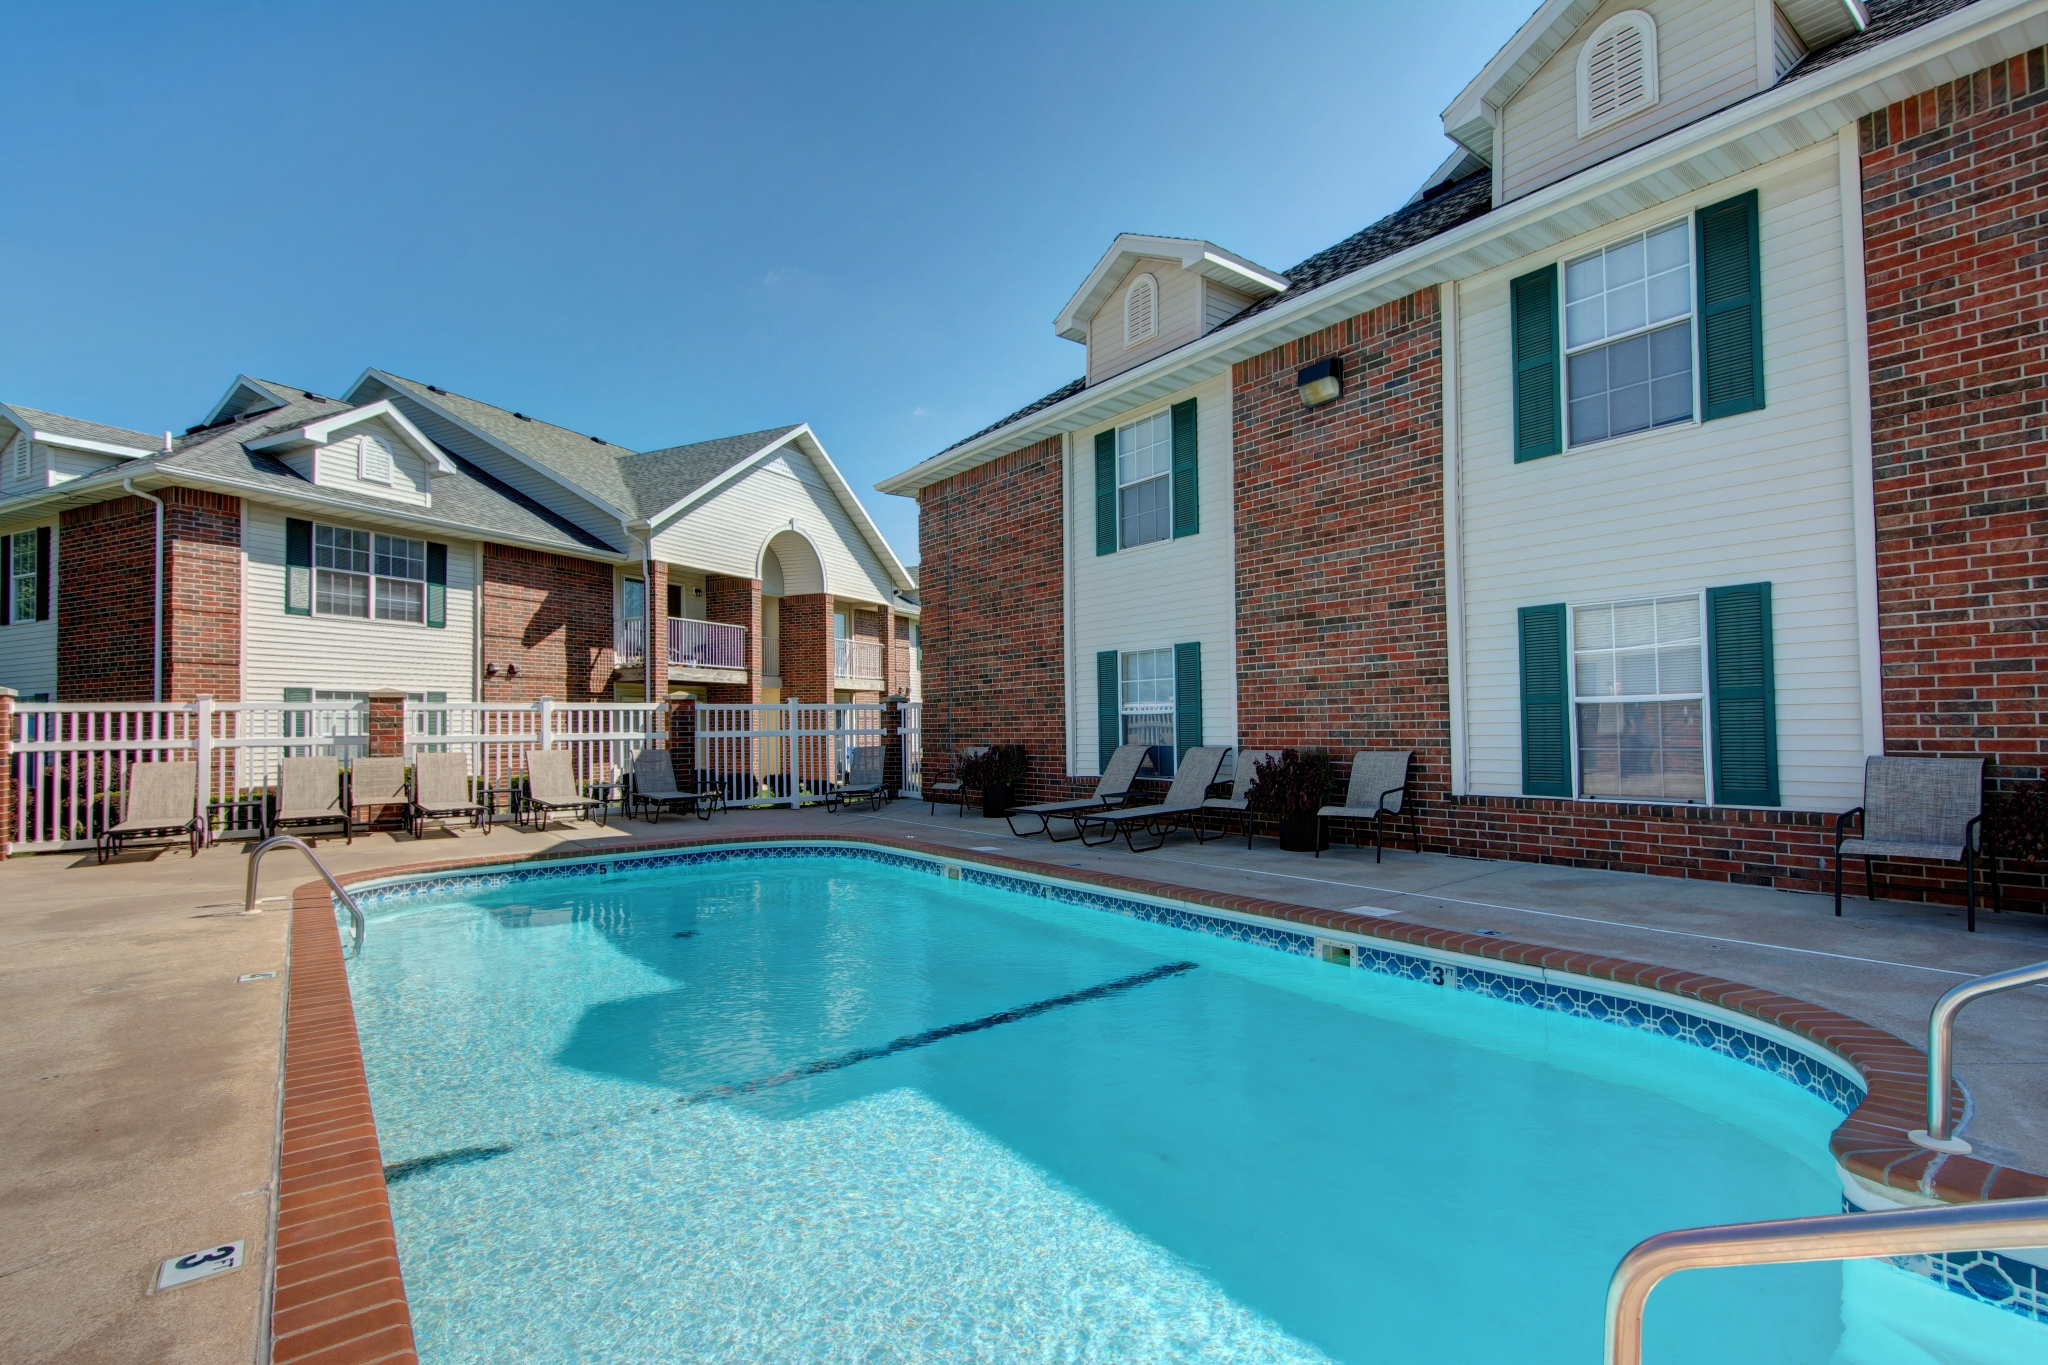 Hawthorn Suites Apartments - Springfield, MO - TLC Properties - Rent - Pool - Swimming Pool